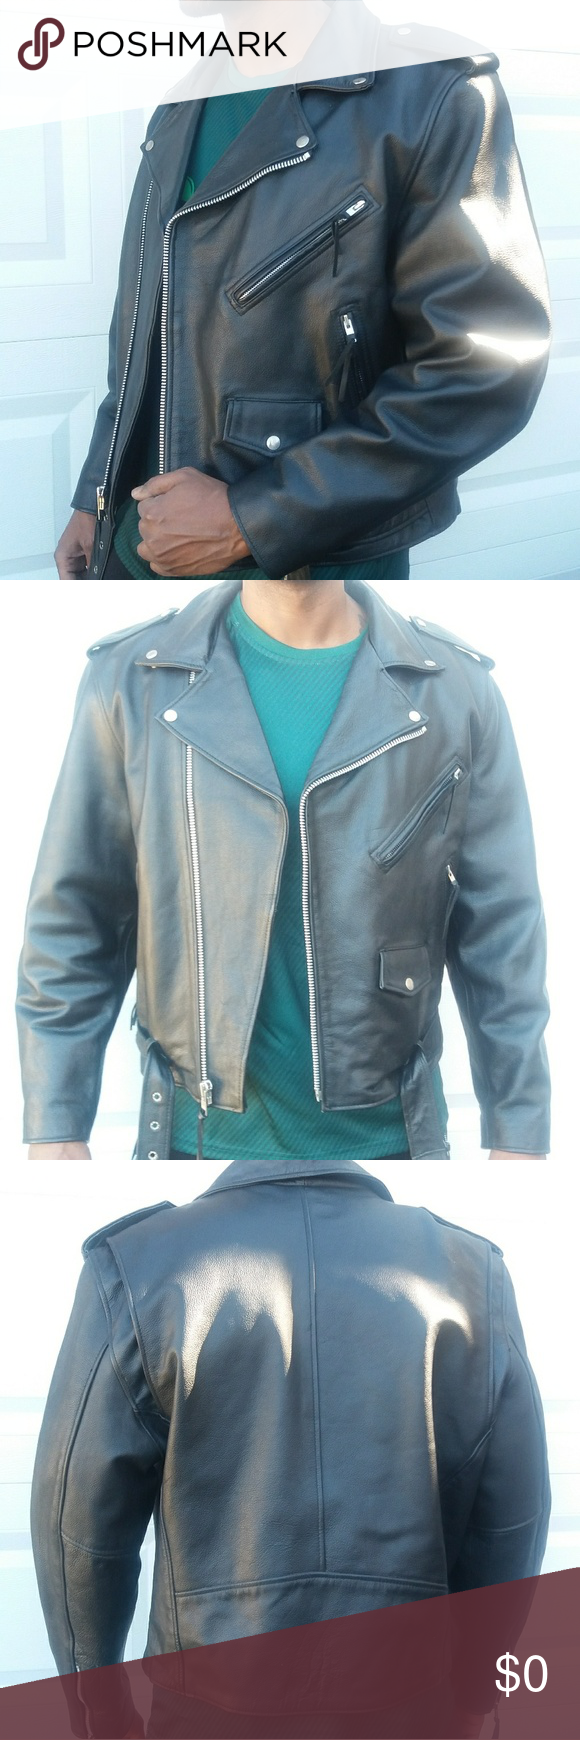 FMC Men's Black Leather Motorcycle Jacket (With images